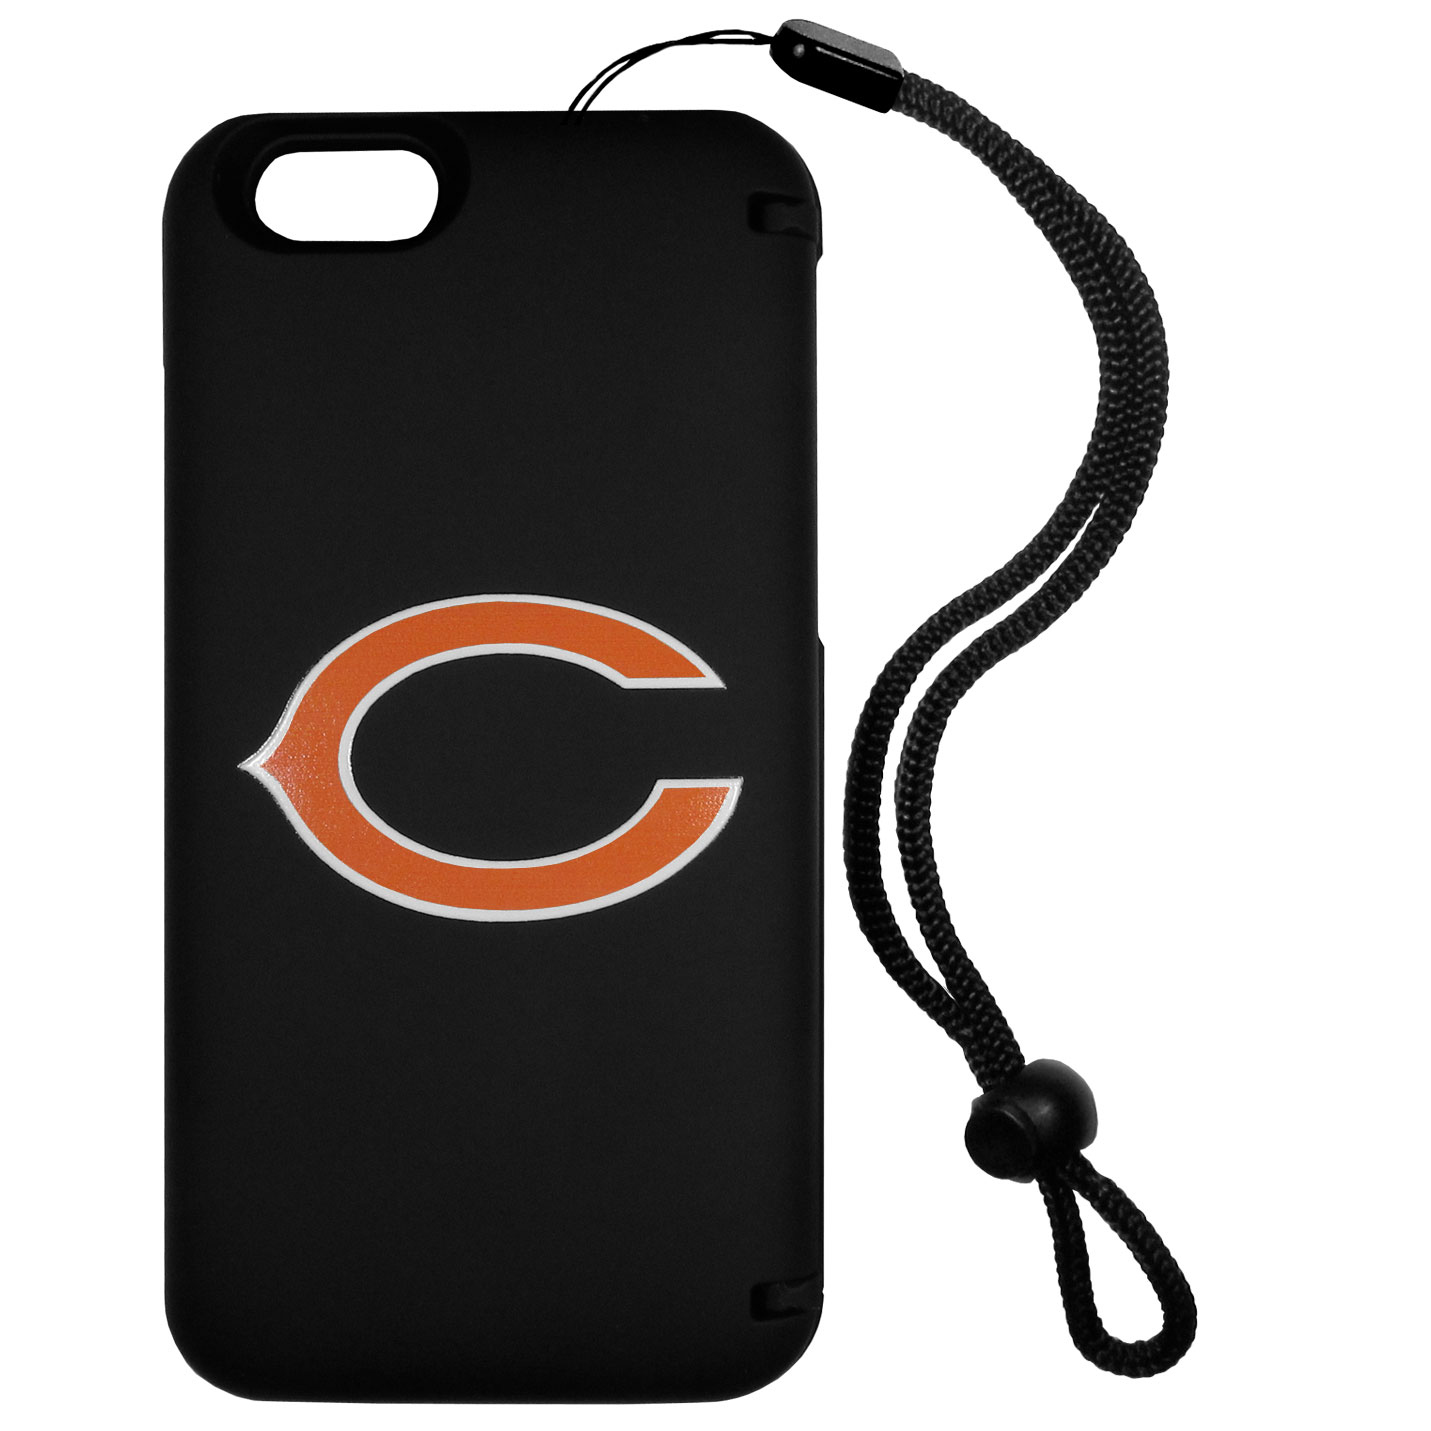 Chicago Bears iPhone 6 Plus Everything Case - This case really does have everything but the kitchen sink! The hidden compartment lets you keep your cards, money and tickets to the big game safe and secure and has a compact mirror so you can make sure your game face is ready to go. It also comes with a kickstand to make chatting and watching videos a breeze. The wrist strap allows you to travel with ease with your everything case. If that's not enough, it also comes with the Chicago Bears logo printed in expert detail on the front.